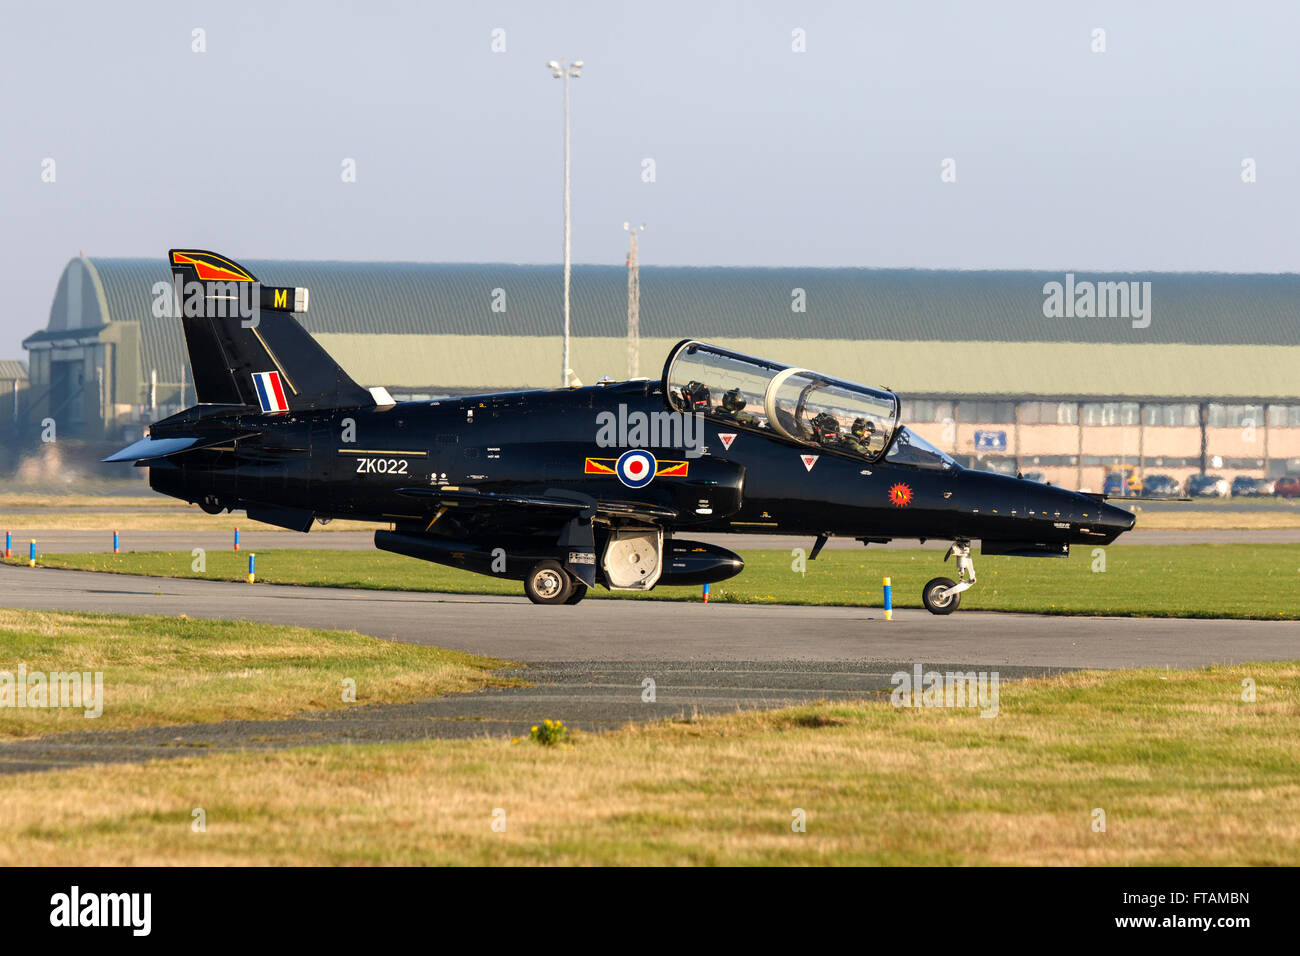 British Aerospace Hawk T2 ZK022 M taxiing at RAF Valley - Stock Image